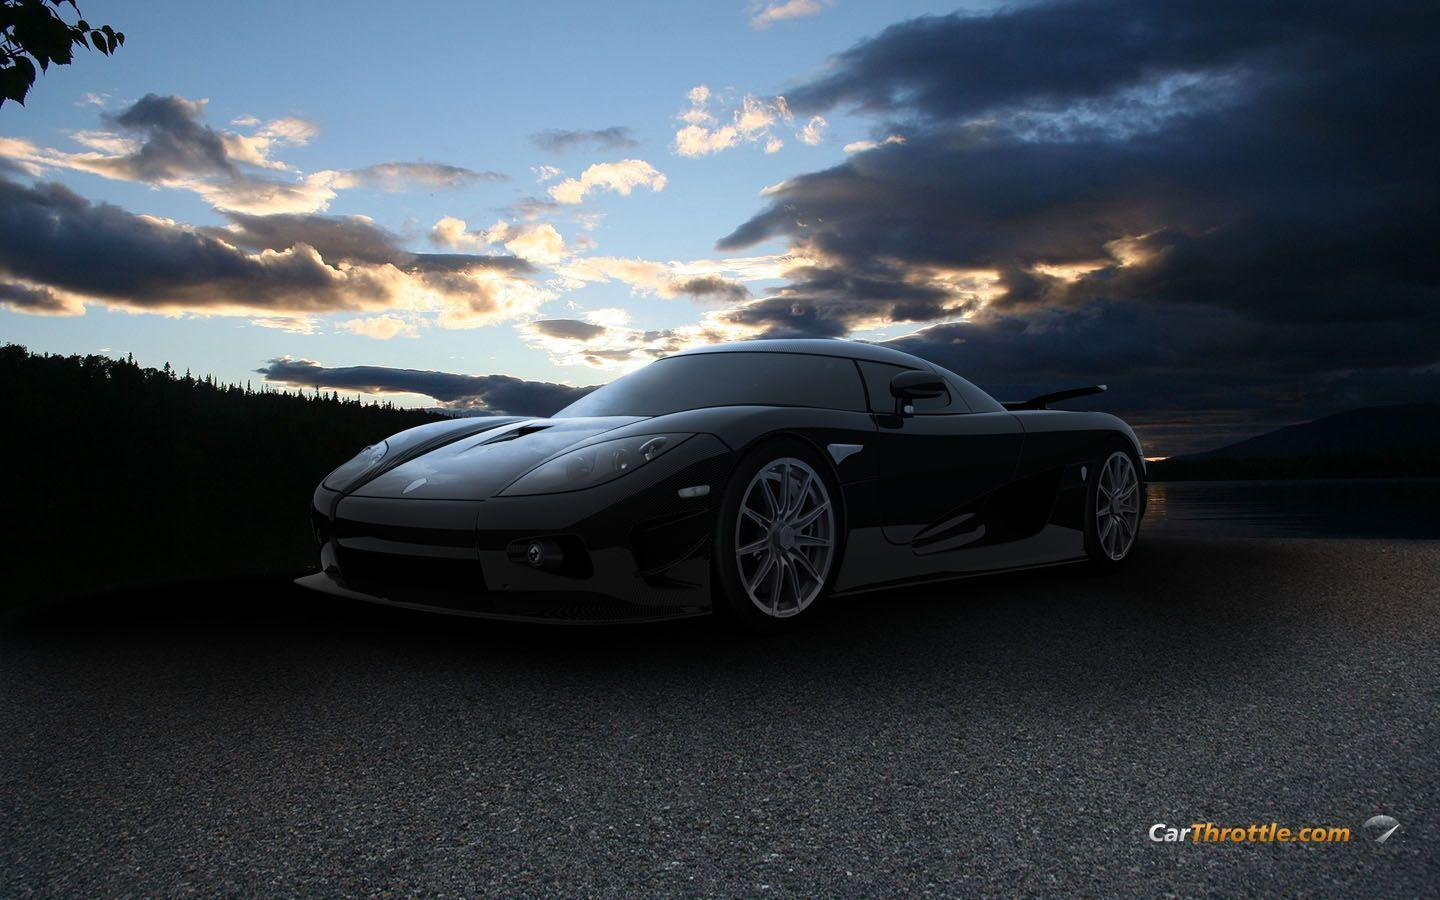 Source Url Wallpapersdesign Net Wallpapers Koenigsegg Ccx Car Pictures